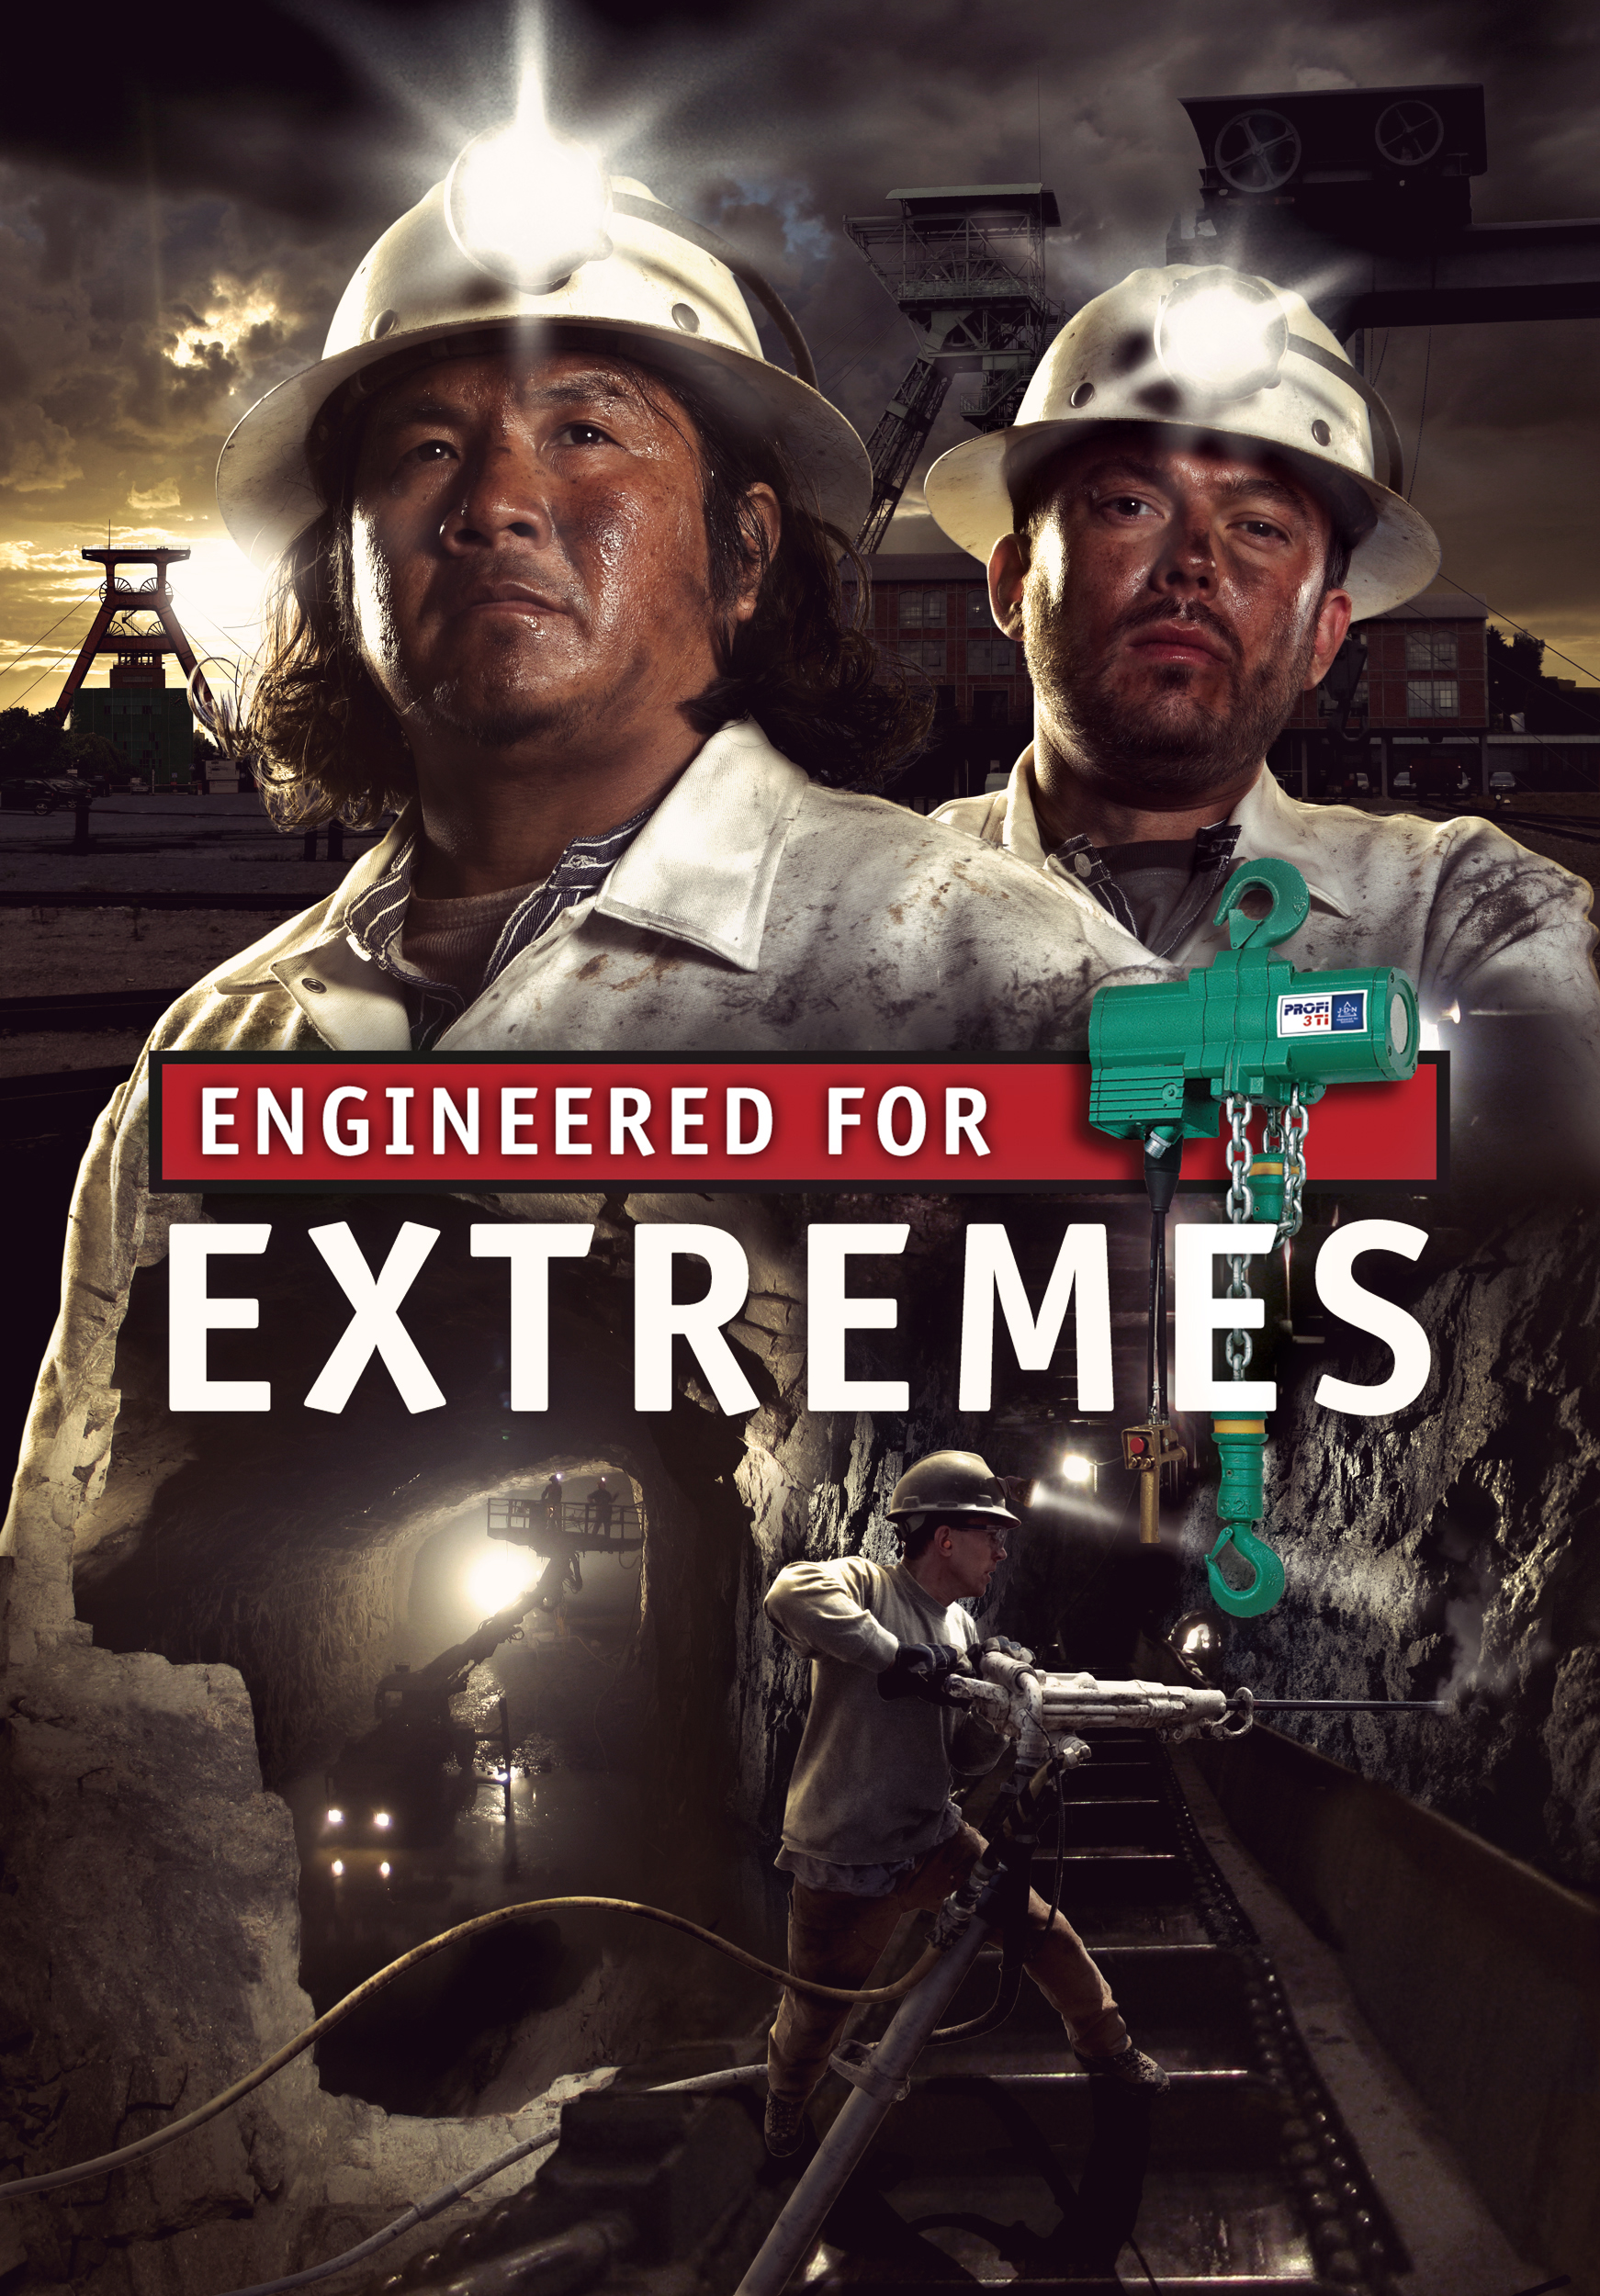 Engineered for Extremes: Mining